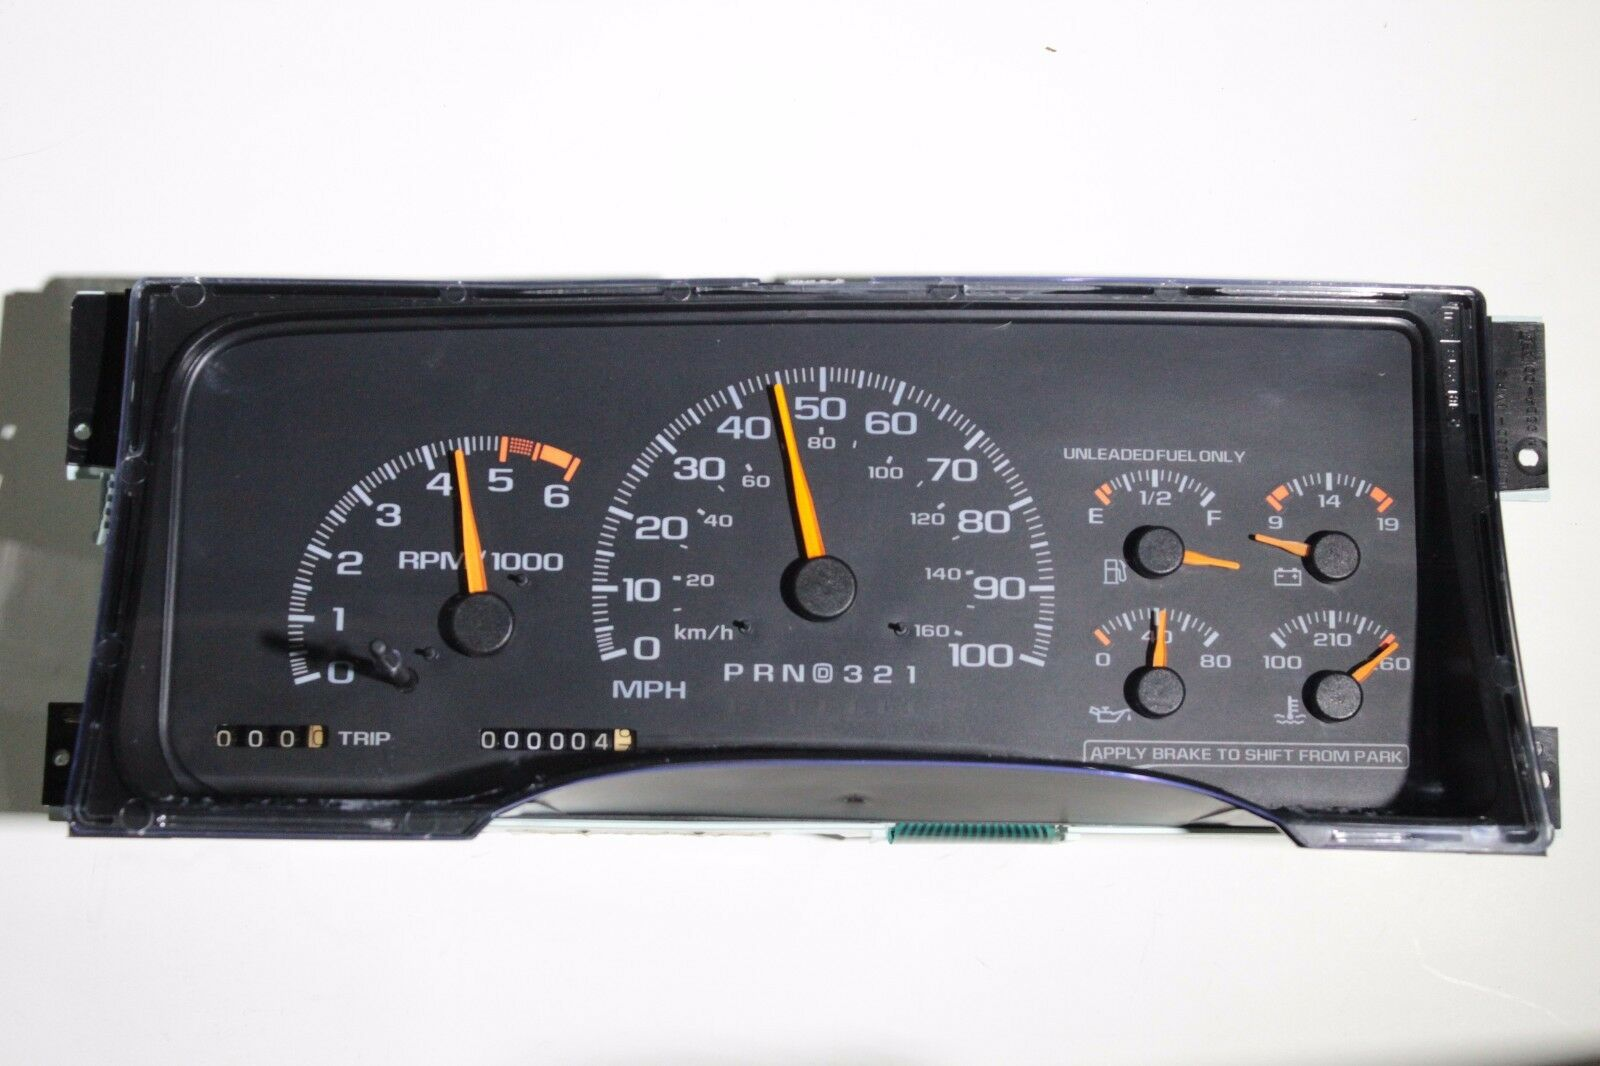 Silverado 2003 chevy silverado dash cluster : Used Chevrolet C3500 Instrument Clusters for Sale